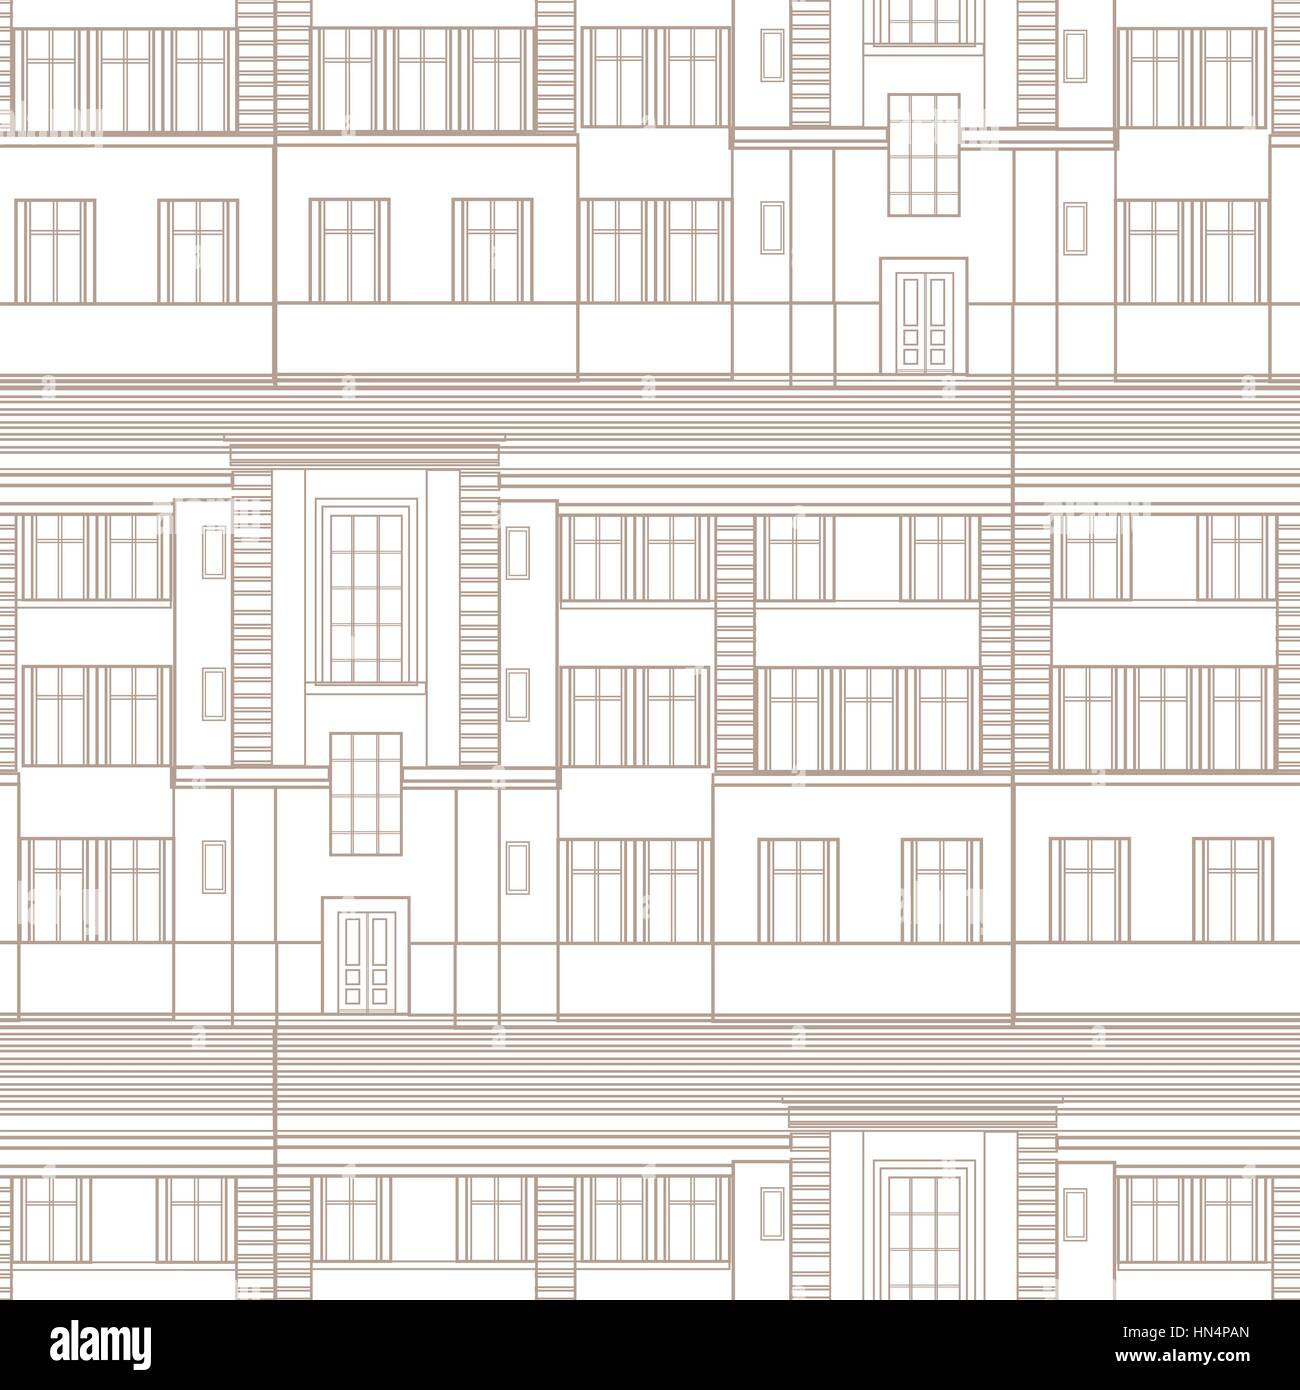 Building Facade Seamless Pattern City Architectural Blueprint Line Background Design Element